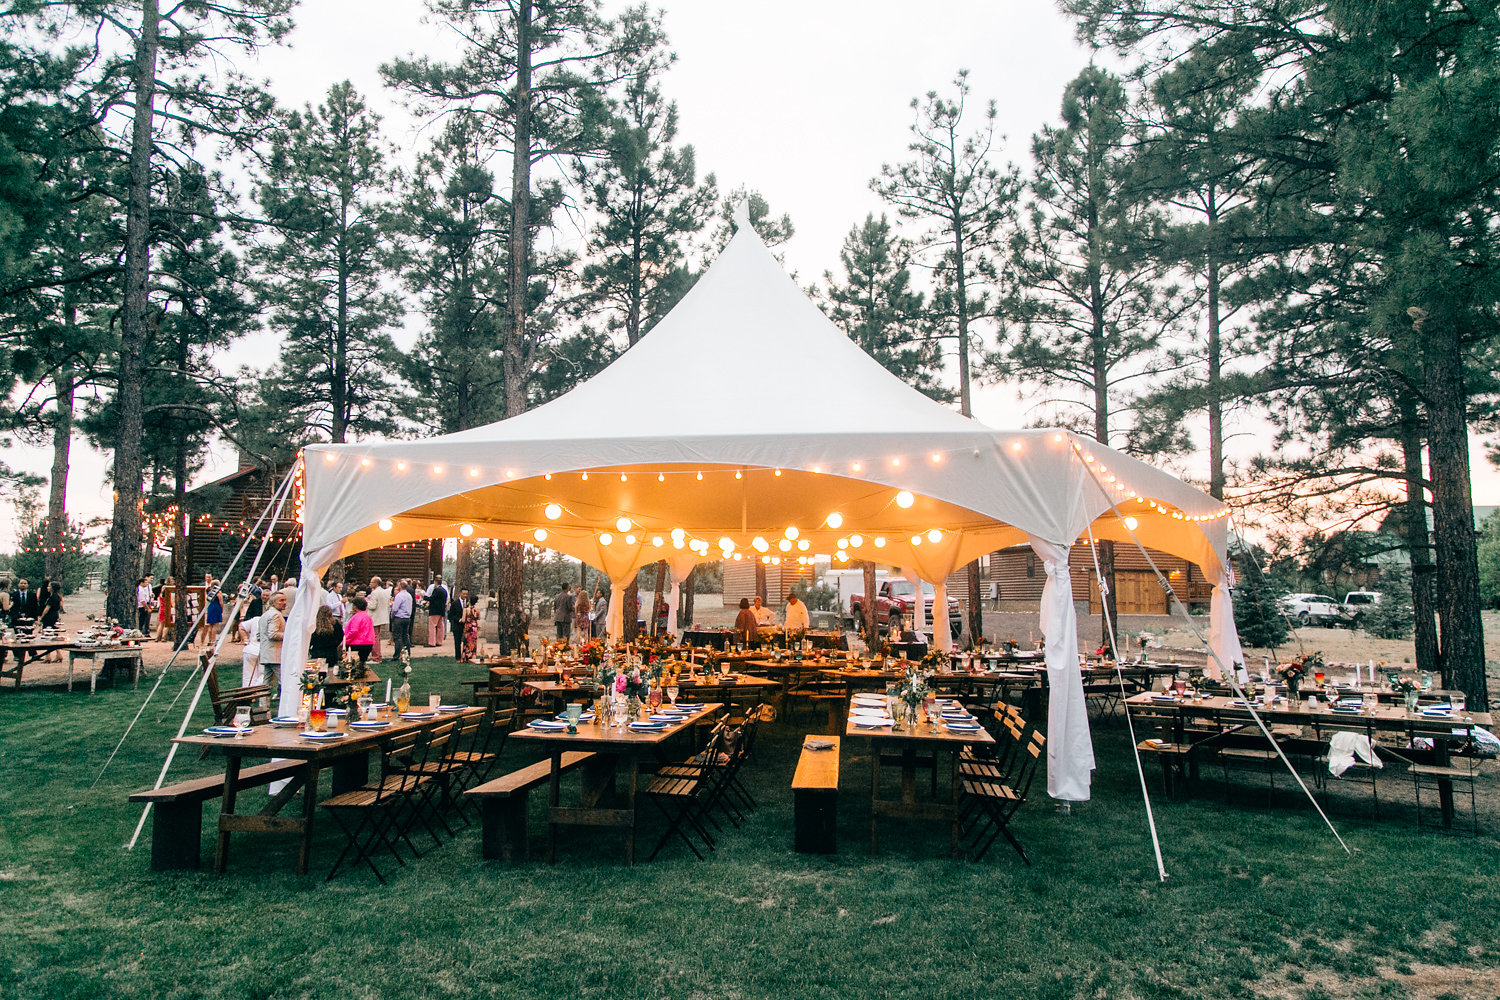 Colorful Cabin Wedding - Tent Reception with String Lights and Farm Tables